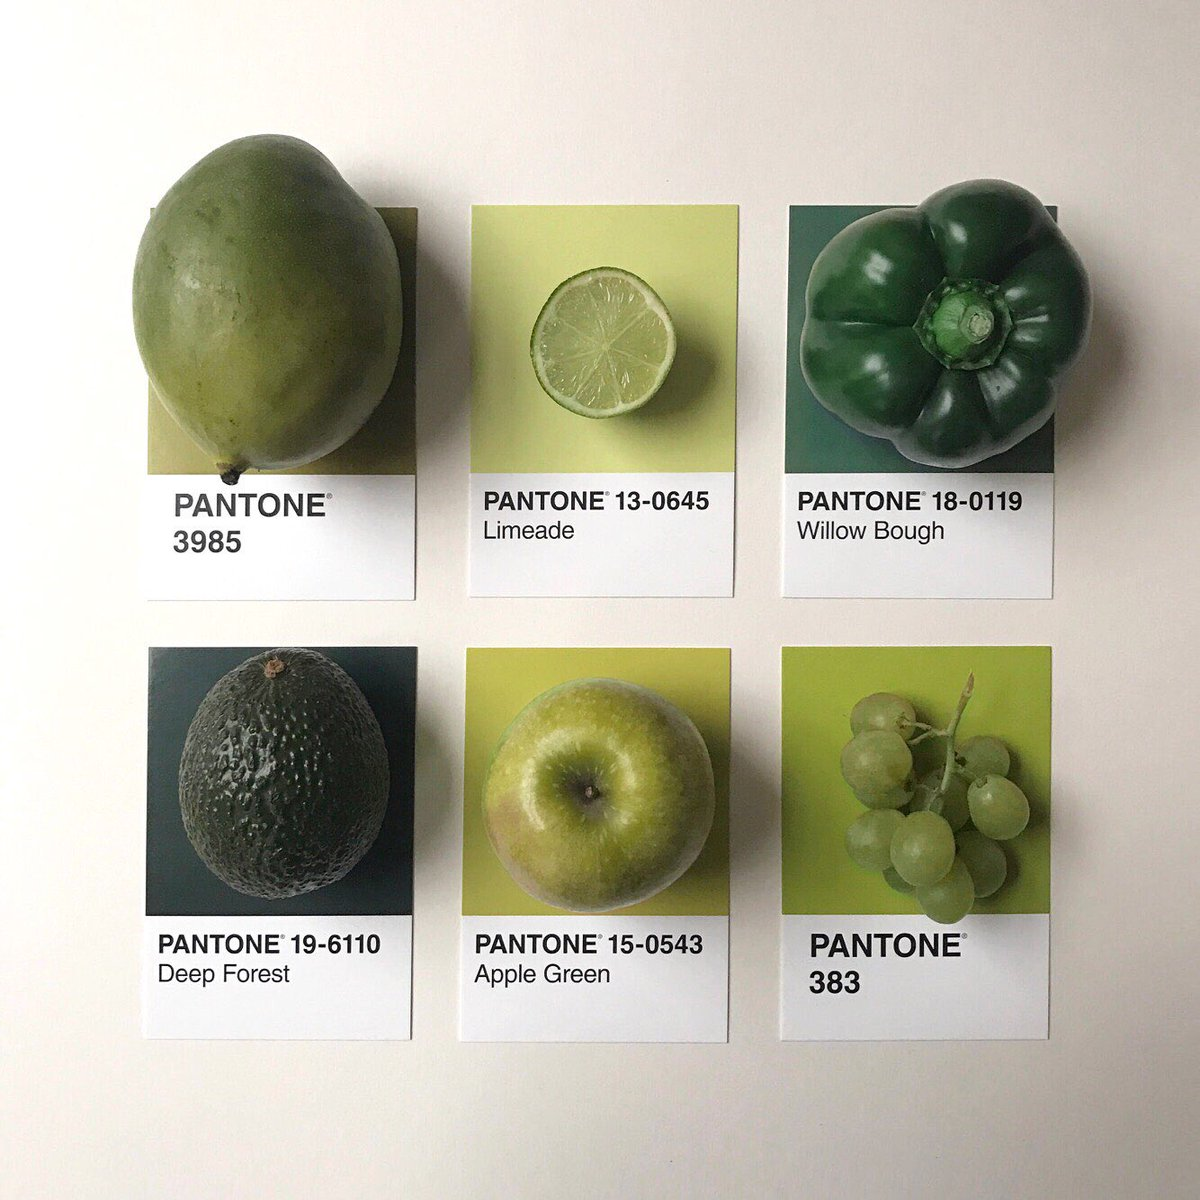 PANTONE 15-0343 #Greenery is the Color of the Year - but we love all greens 🍏  📷: Tom Lowe